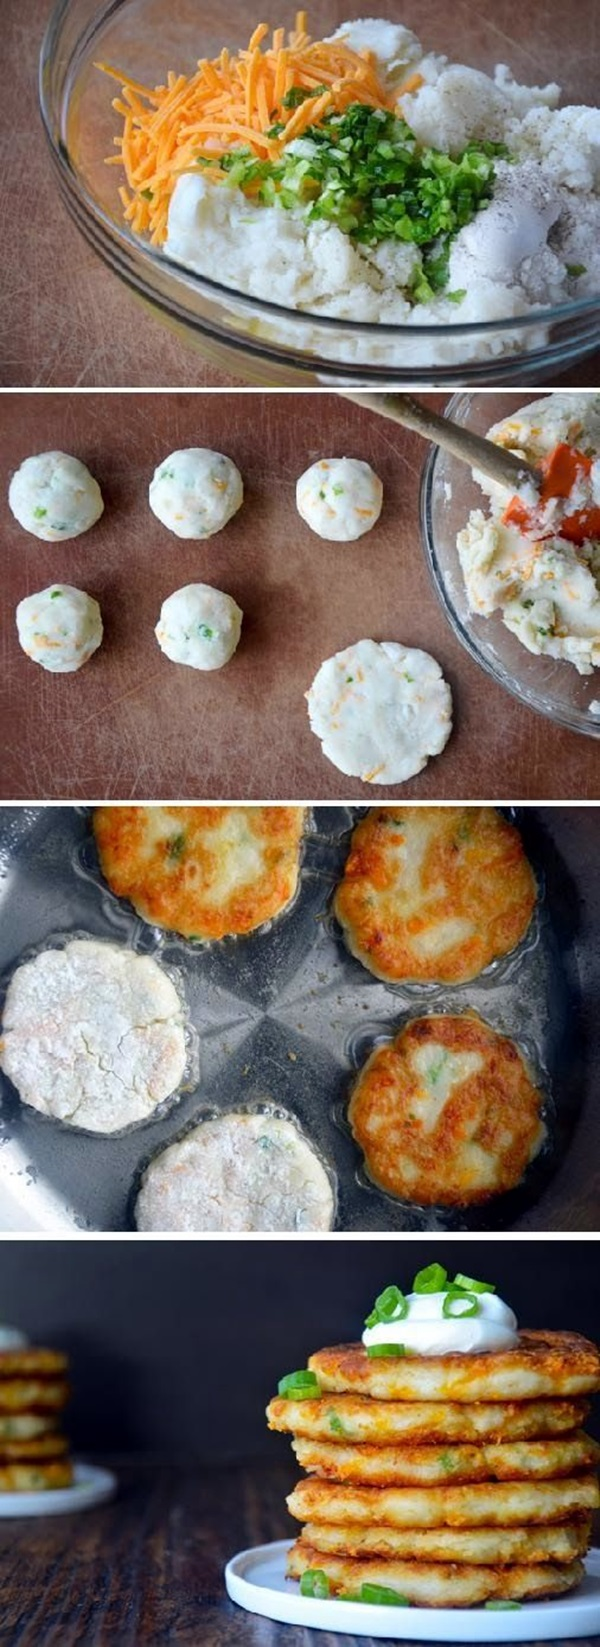 Ways To Use Cauliflower As A Low-Carb Replacement (4)